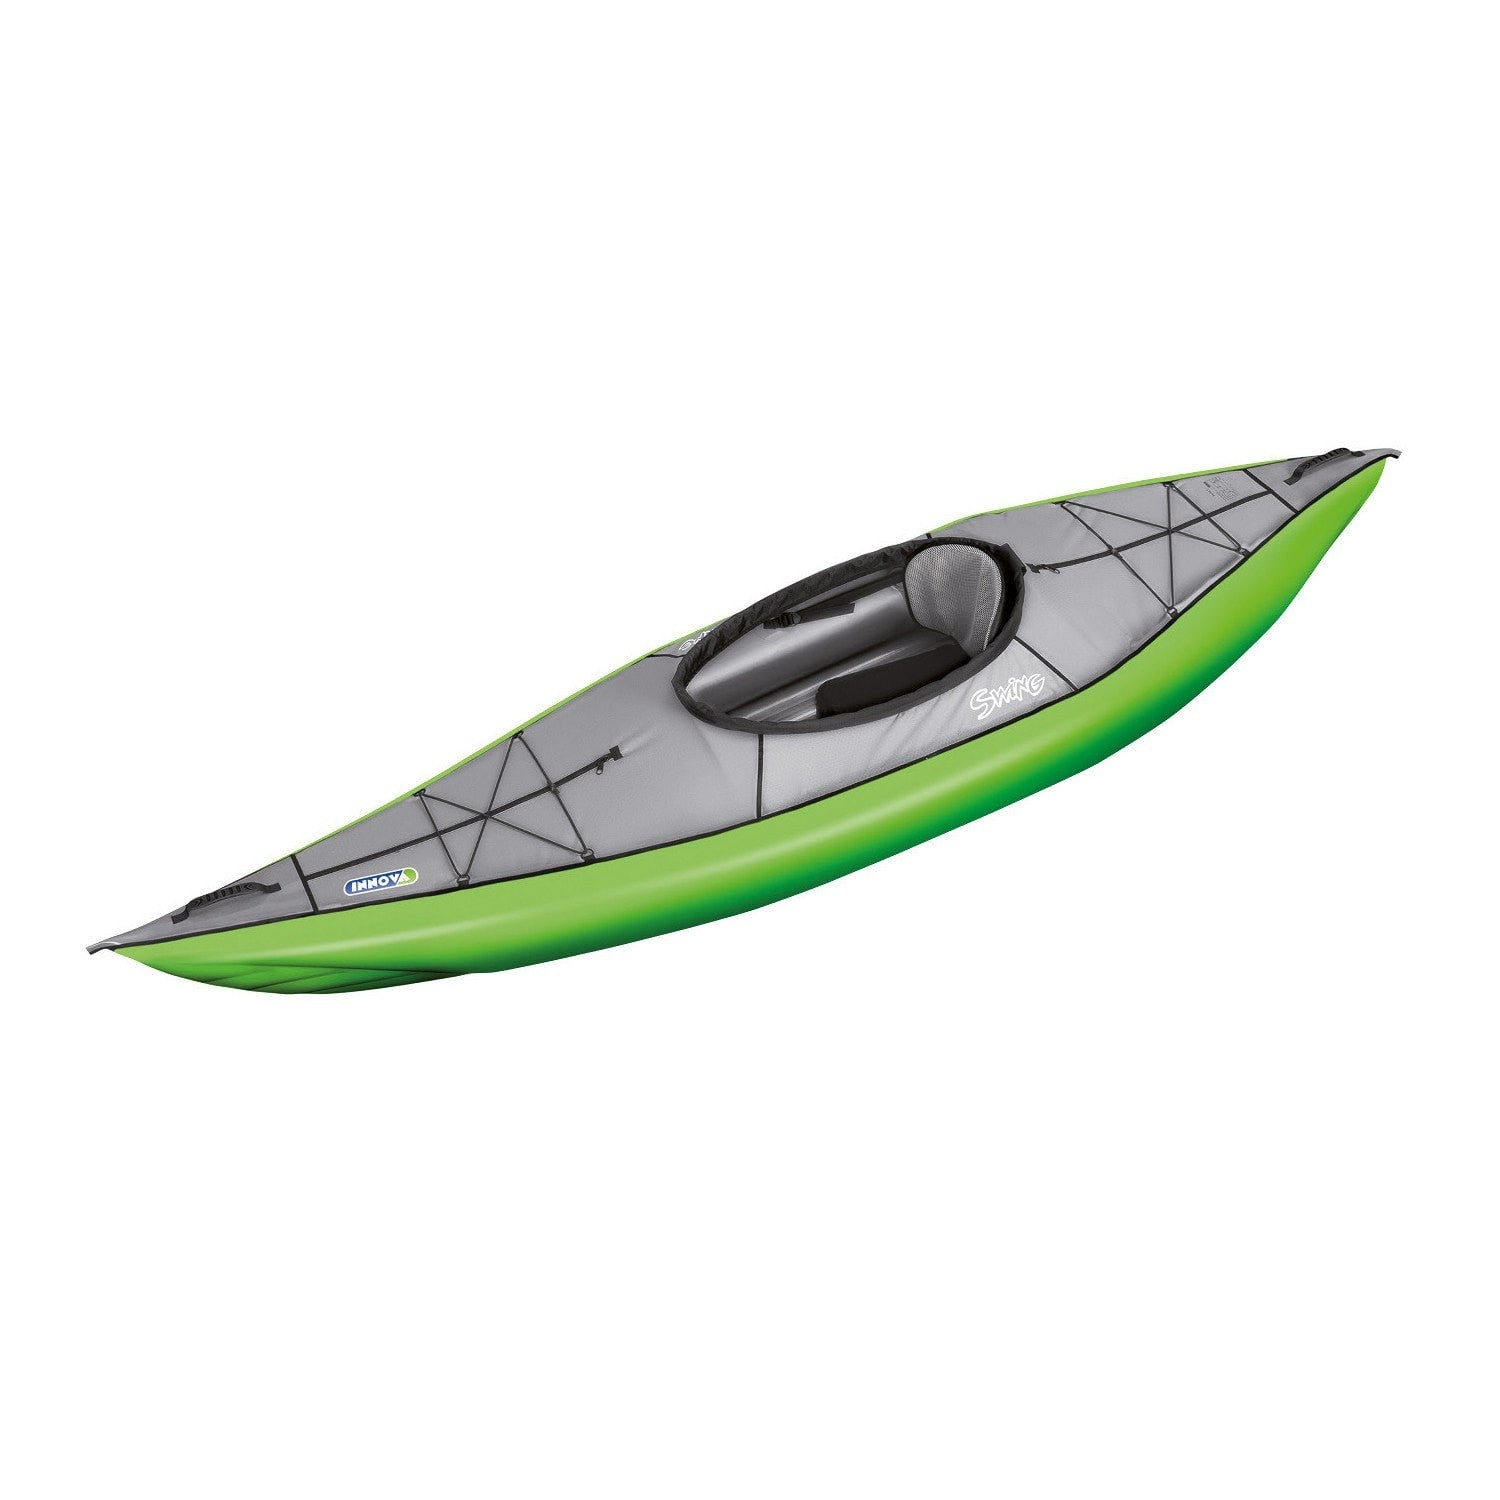 Innova Swing I Inflatable Kayak - Green SWG1-0017-GRN - Kayak Creek